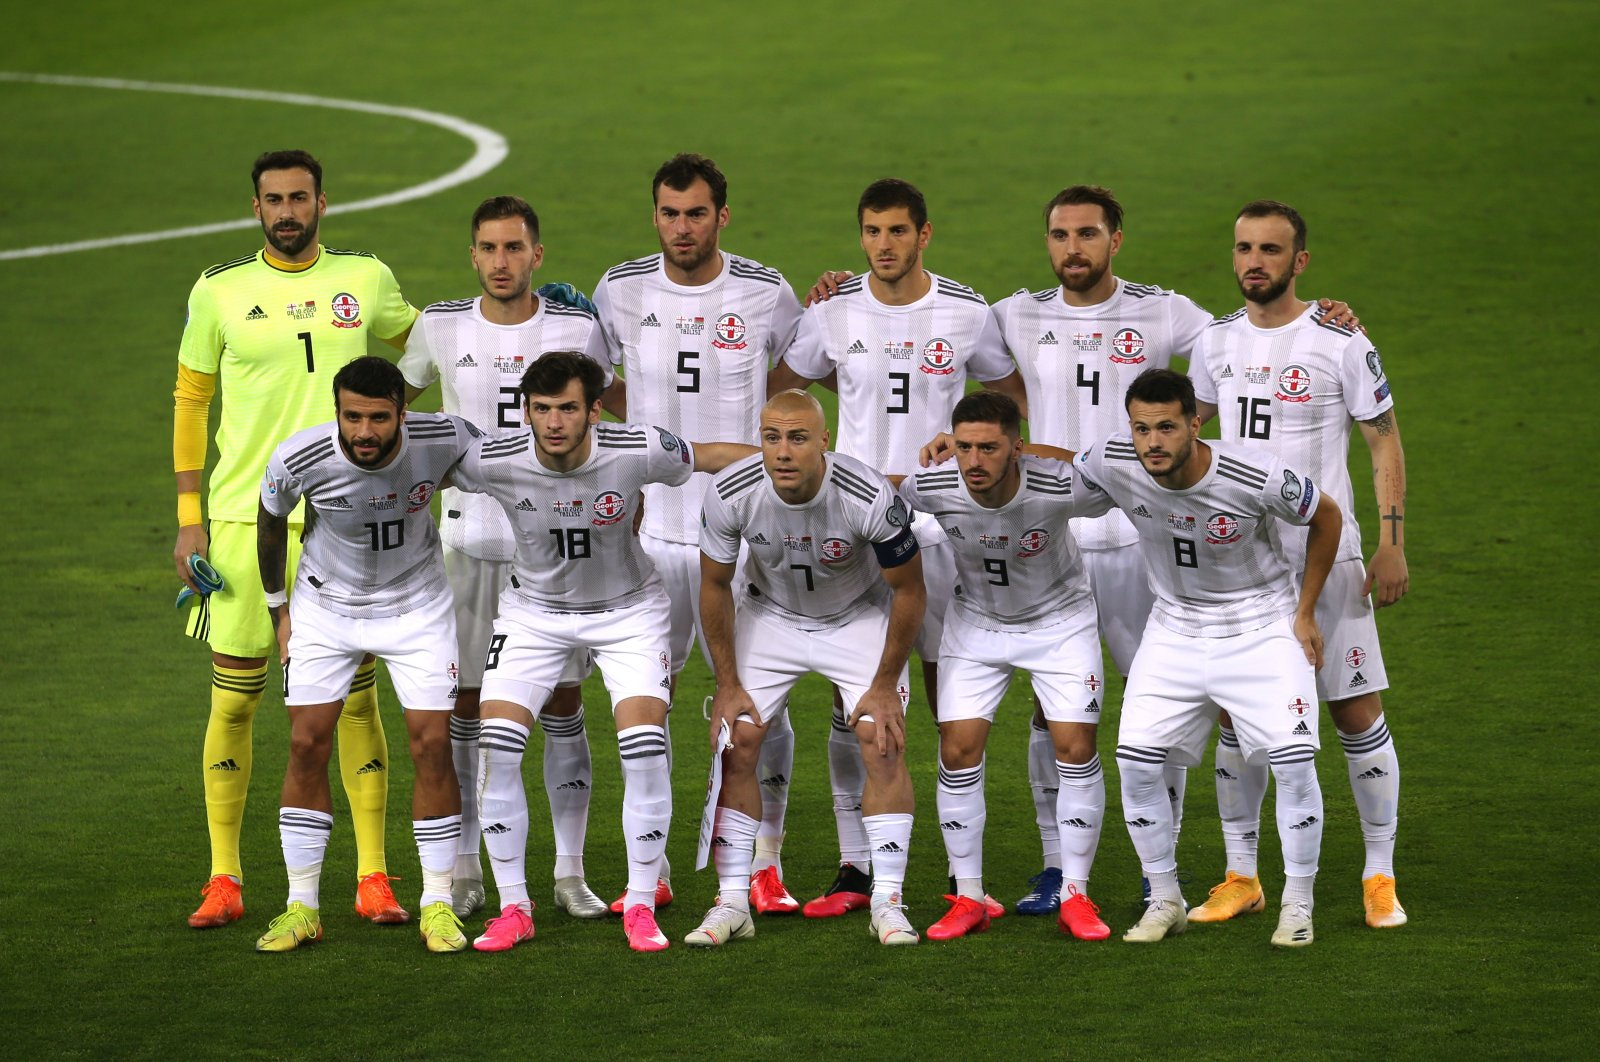 Georgia players pose for a team group photo before a match against Belarus, in Tbilisi, Georgia, Oct. 8, 2020. (Reuters Photo)